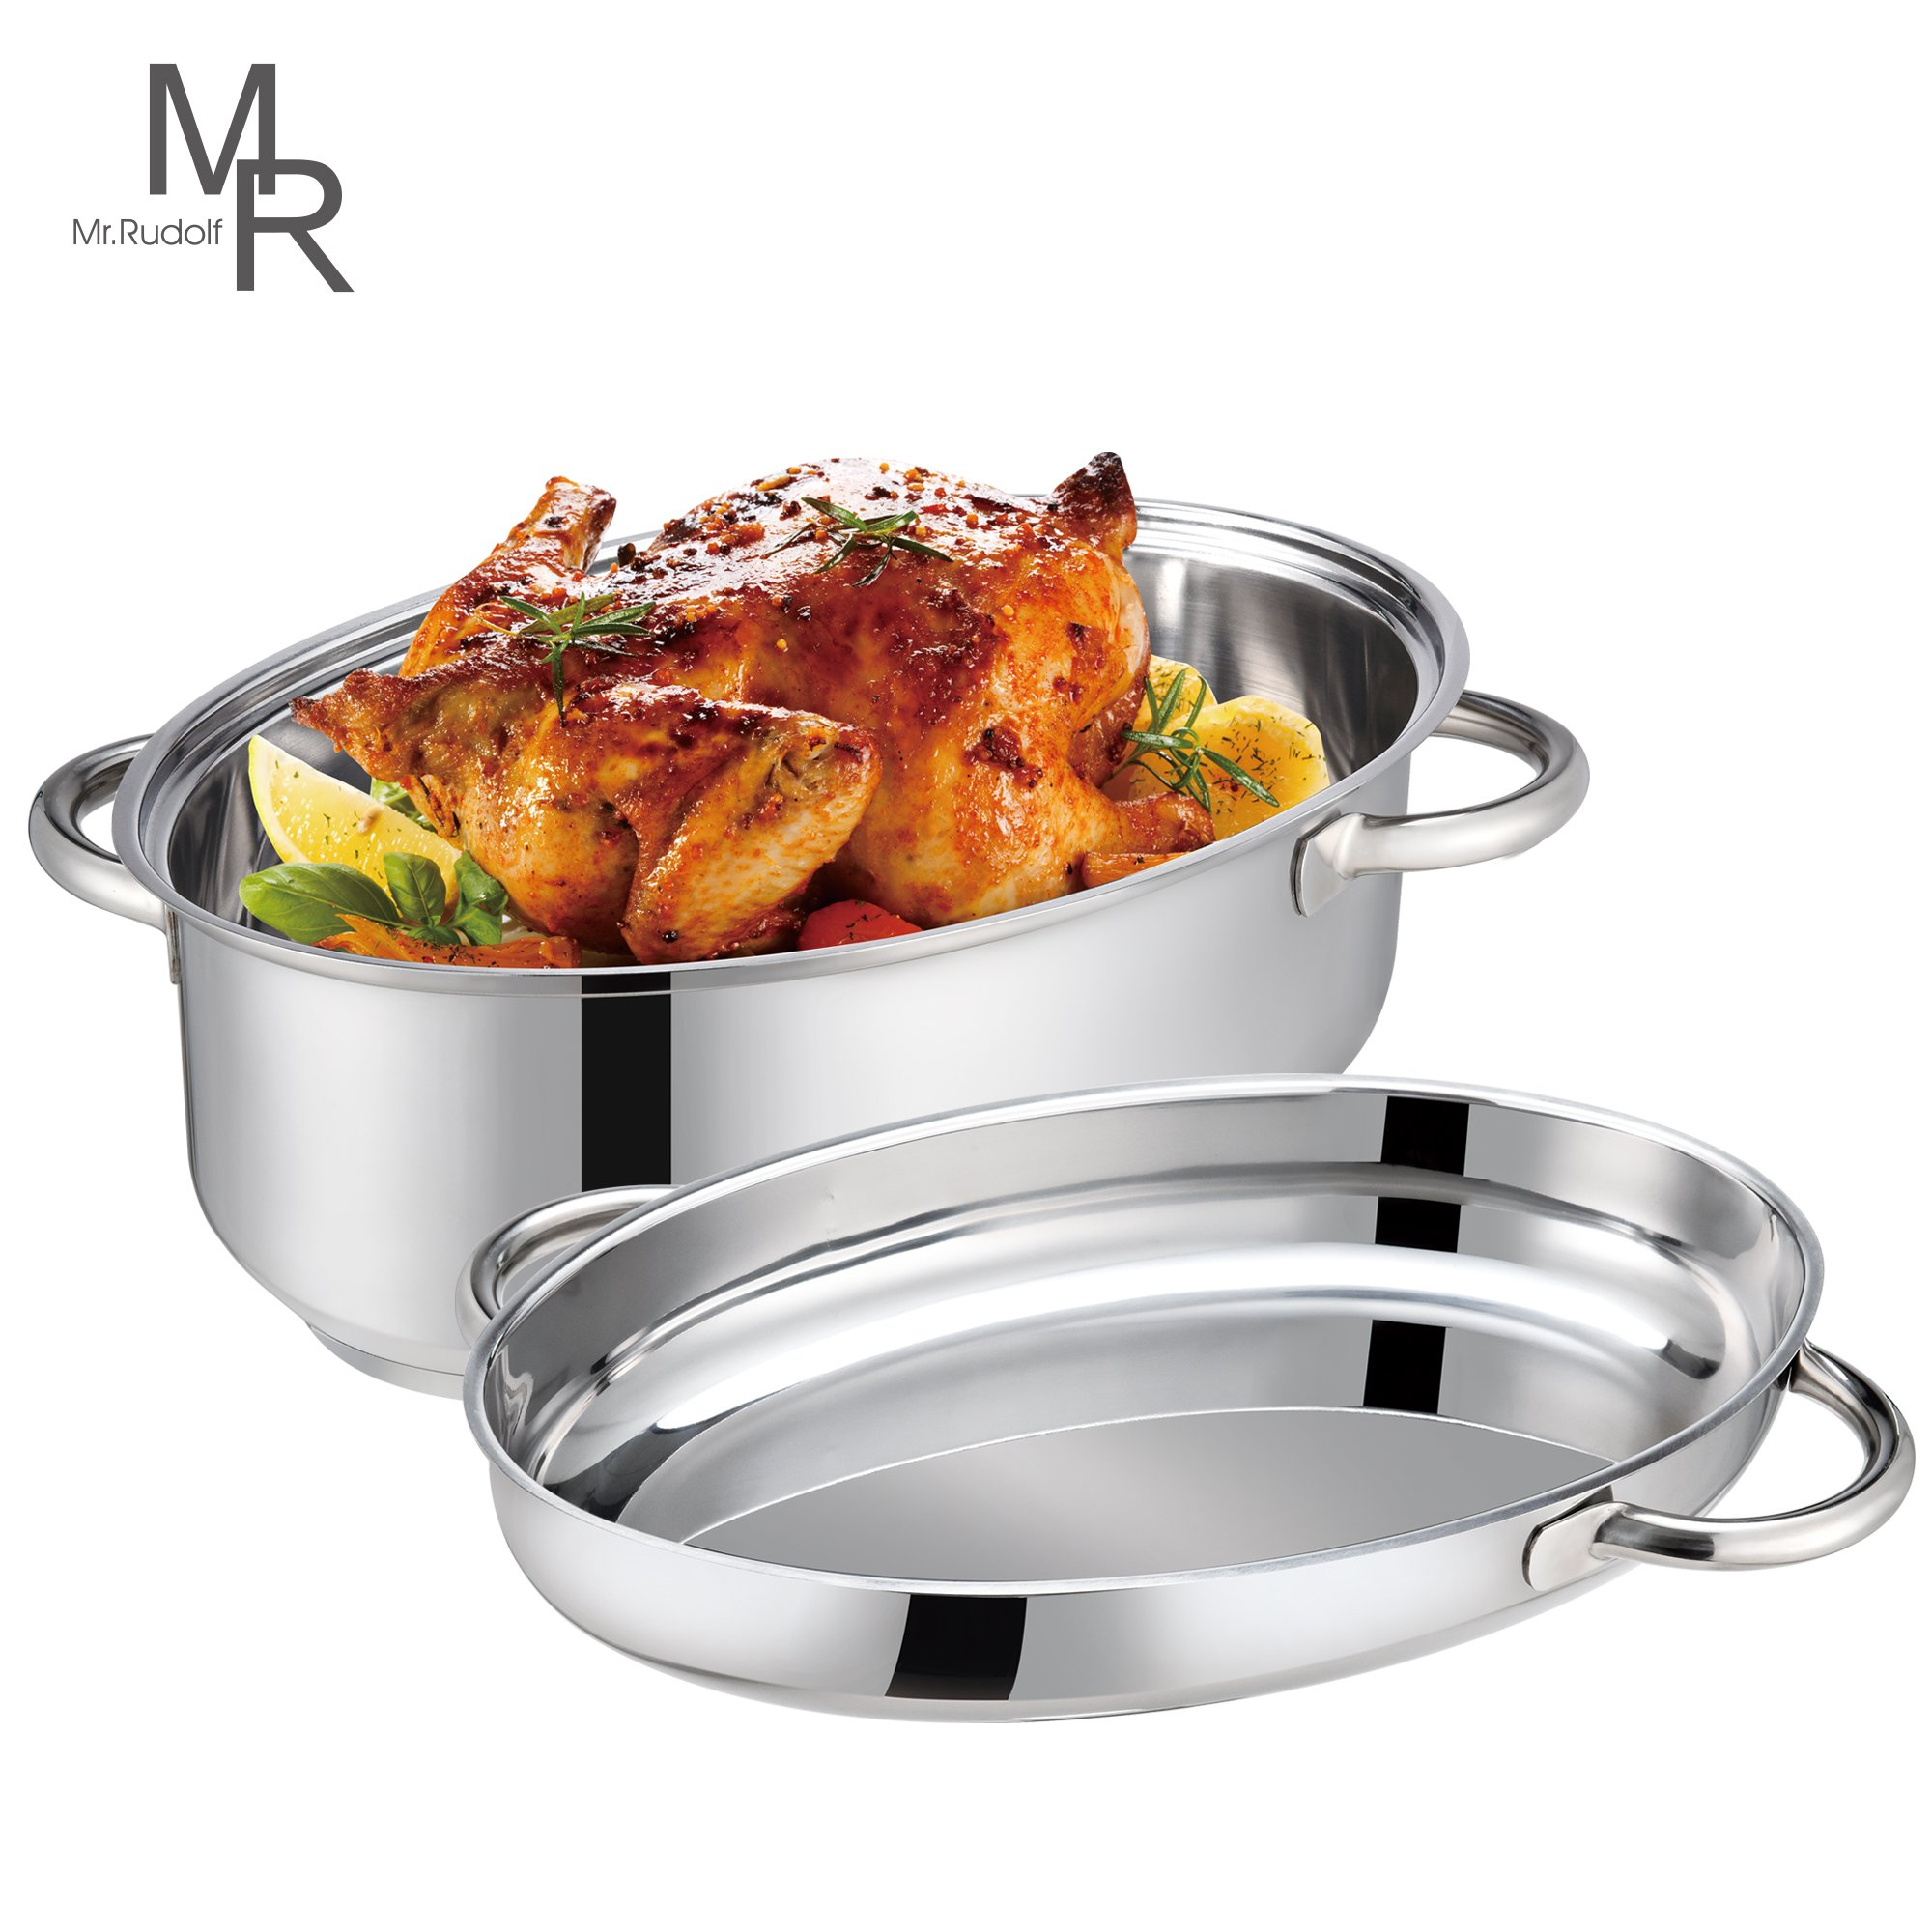 Mr. Rudolf 18/10 Stainless Steel 15-inch Oval Roaster with Rack and Lid Dishwasher Safe Oven Safe Oval Roasting Pan PFOA Free 8.5 Quart + 4.2 Quart by Mr. Rudolf